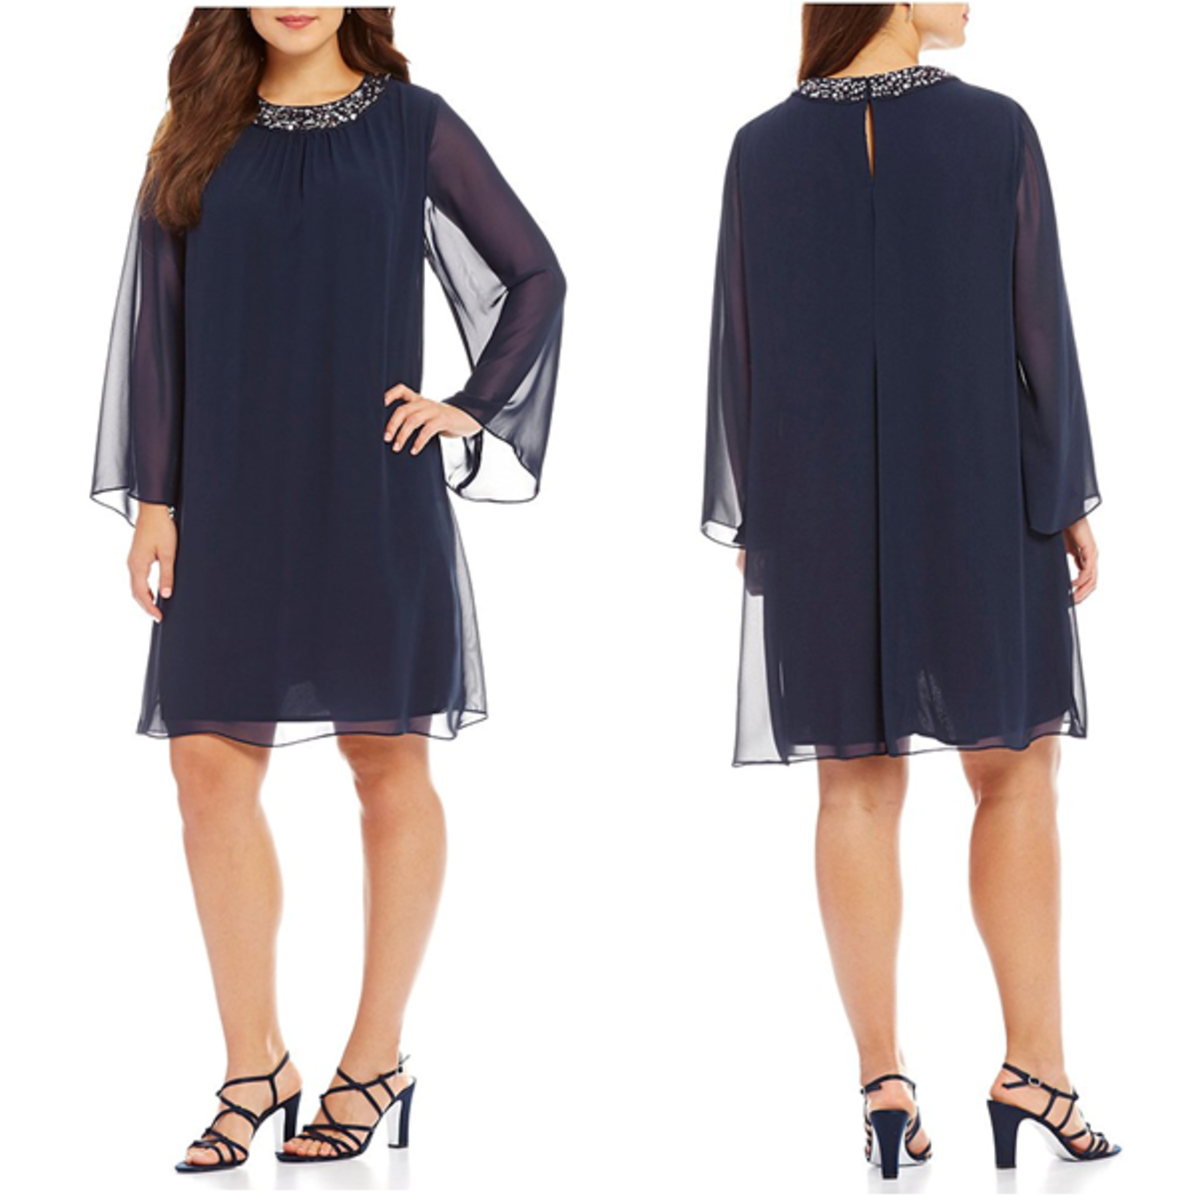 jewel neckline chiffon dress: trapeze silhouette, long sleeves